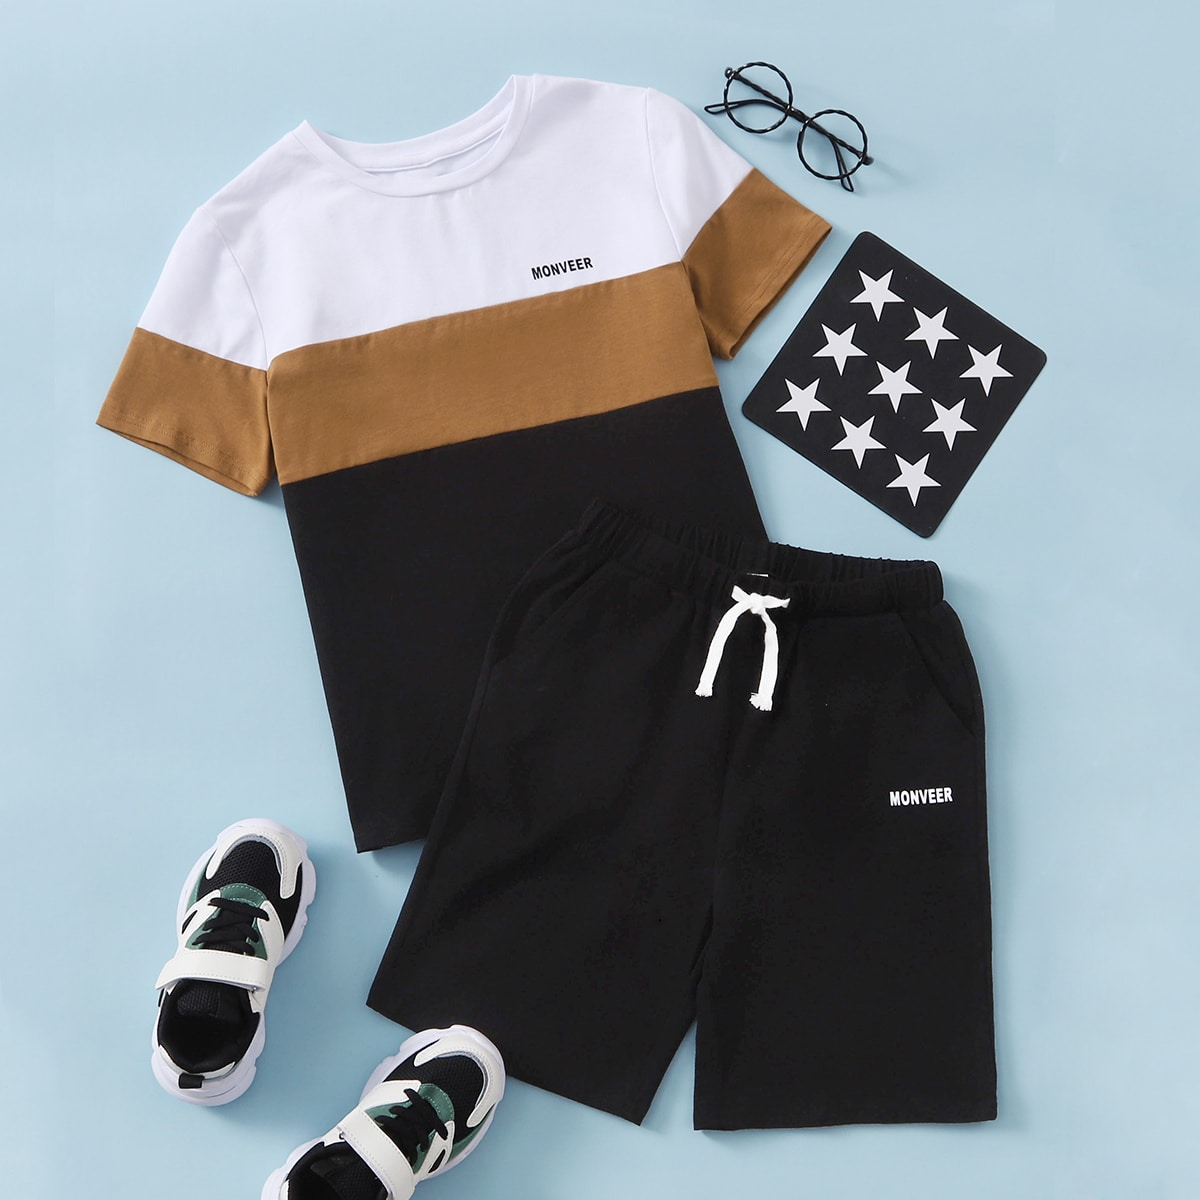 Boys Color Block Tee & Track Shorts, SHEIN  - buy with discount